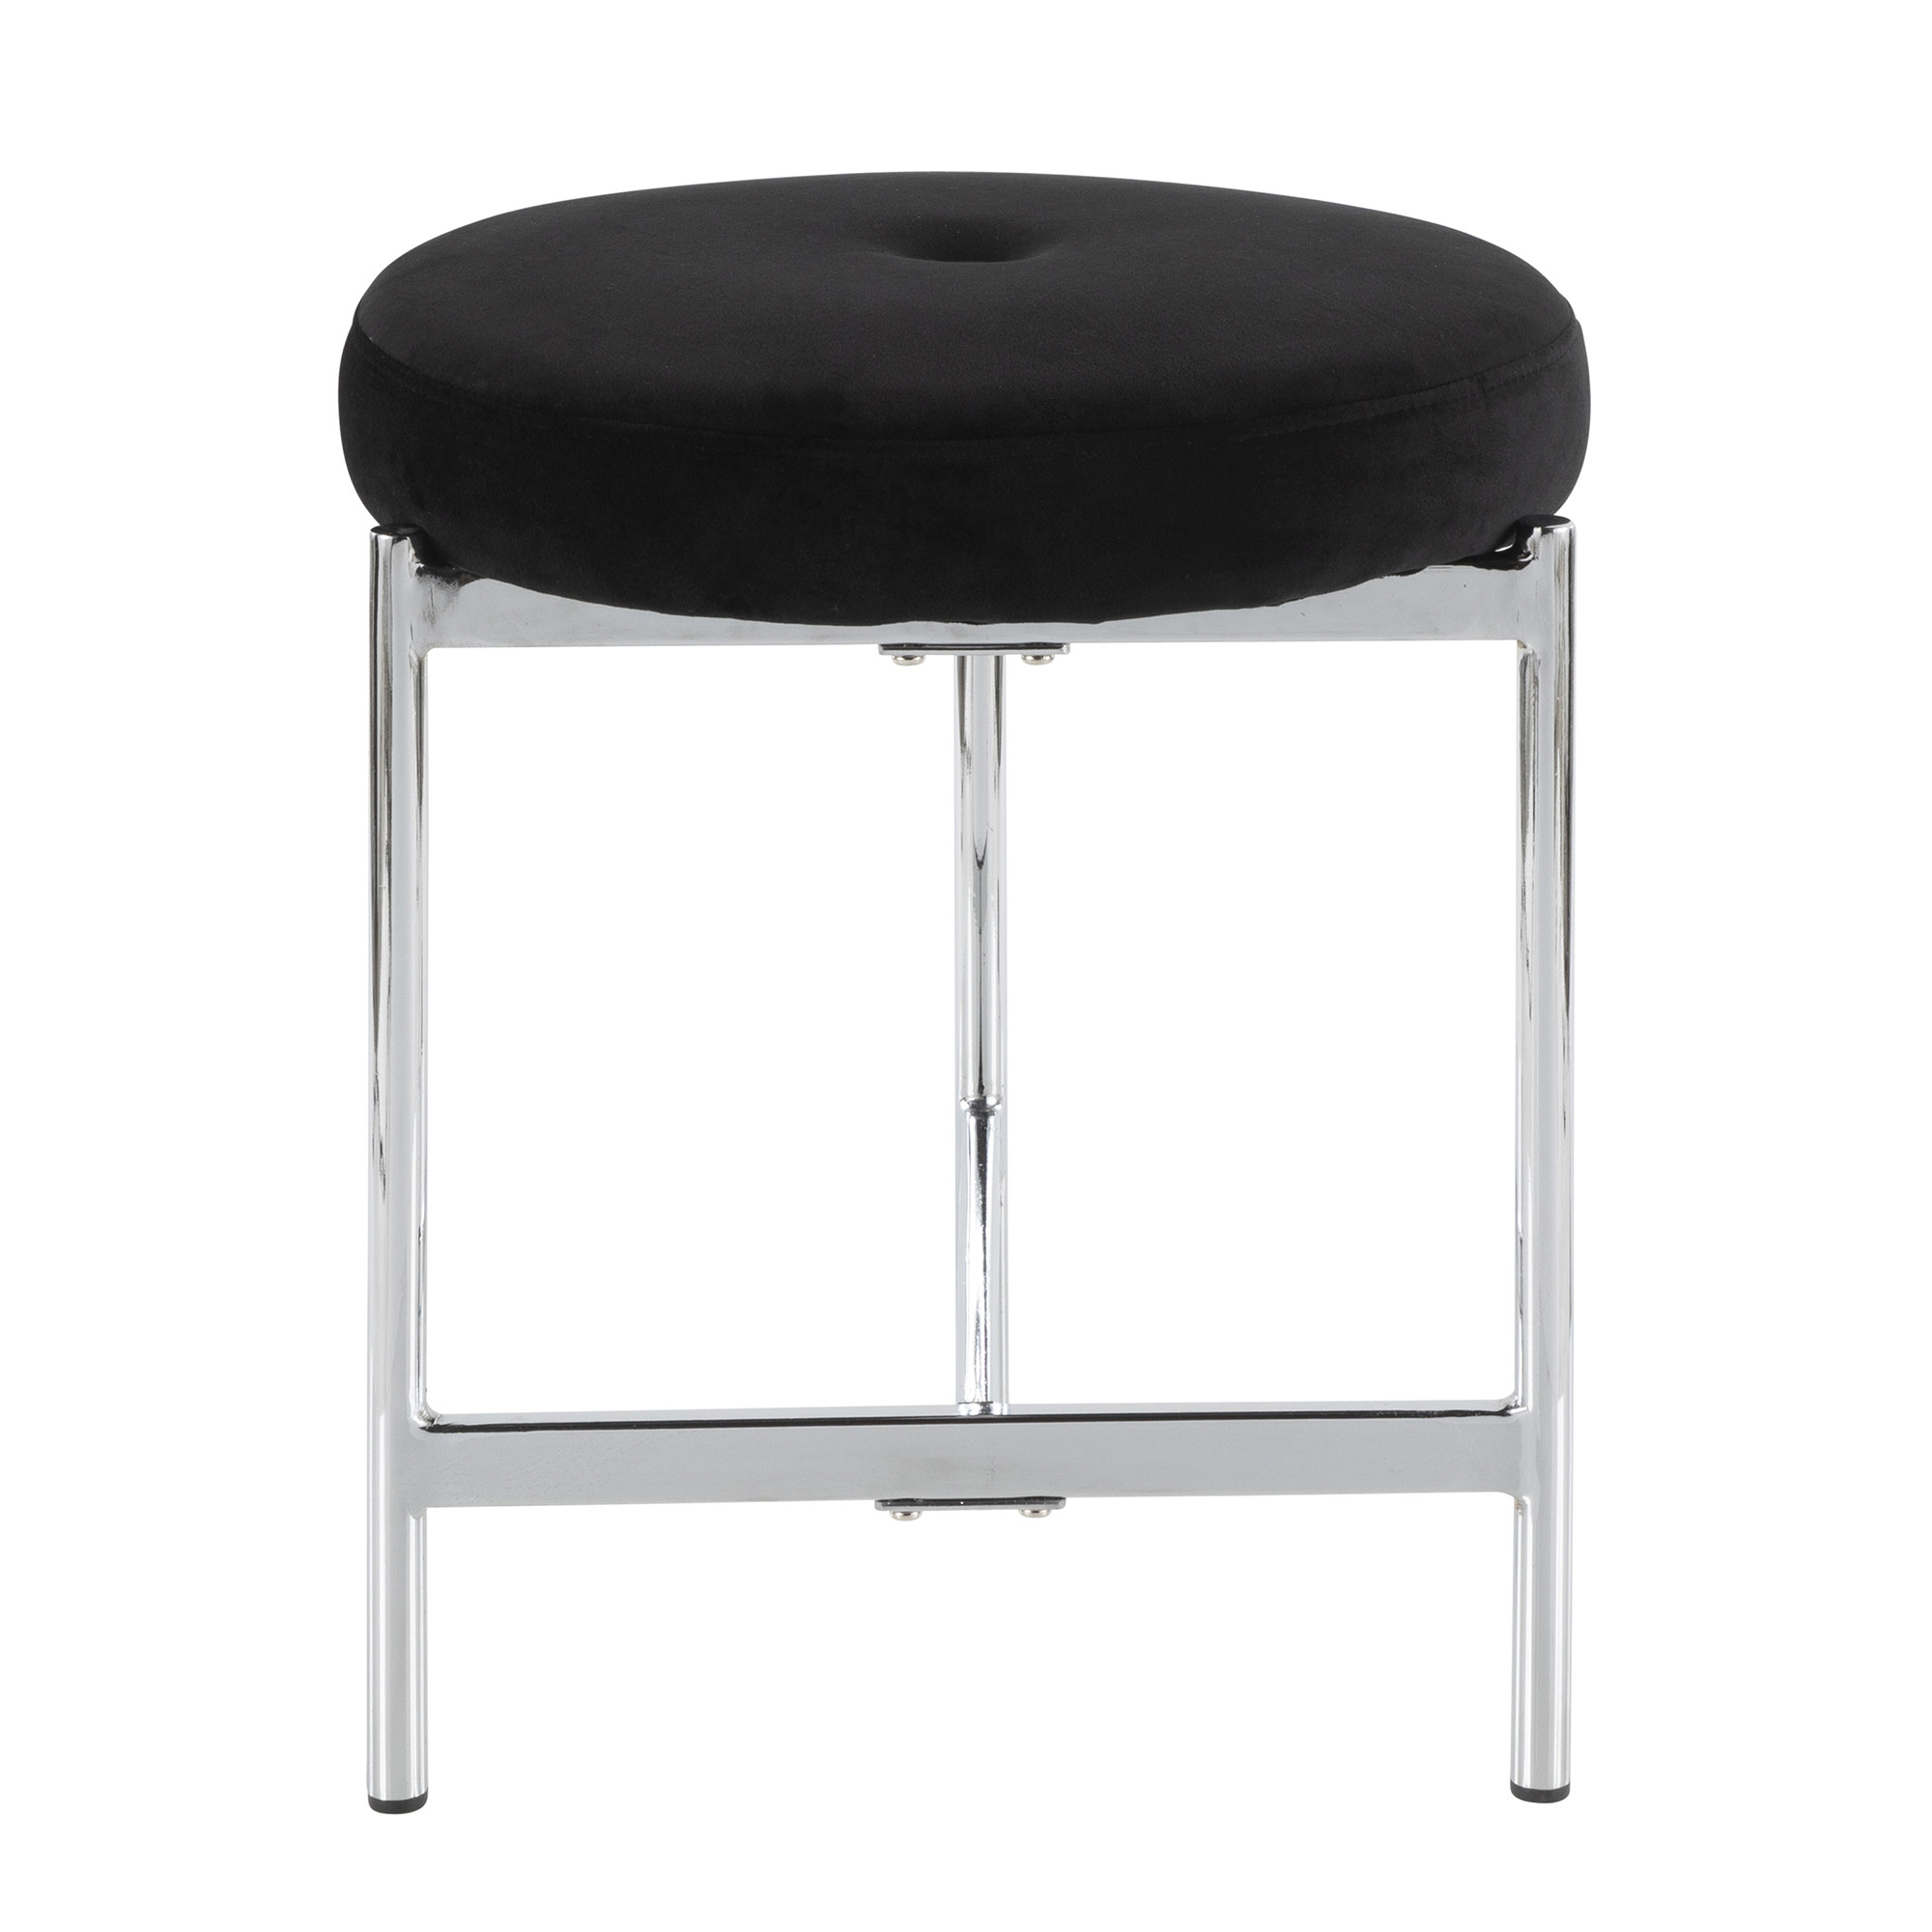 Marvelous Chloe Contemporary Vanity Stool In Chrome And Blue Velvet By Lumisource Caraccident5 Cool Chair Designs And Ideas Caraccident5Info